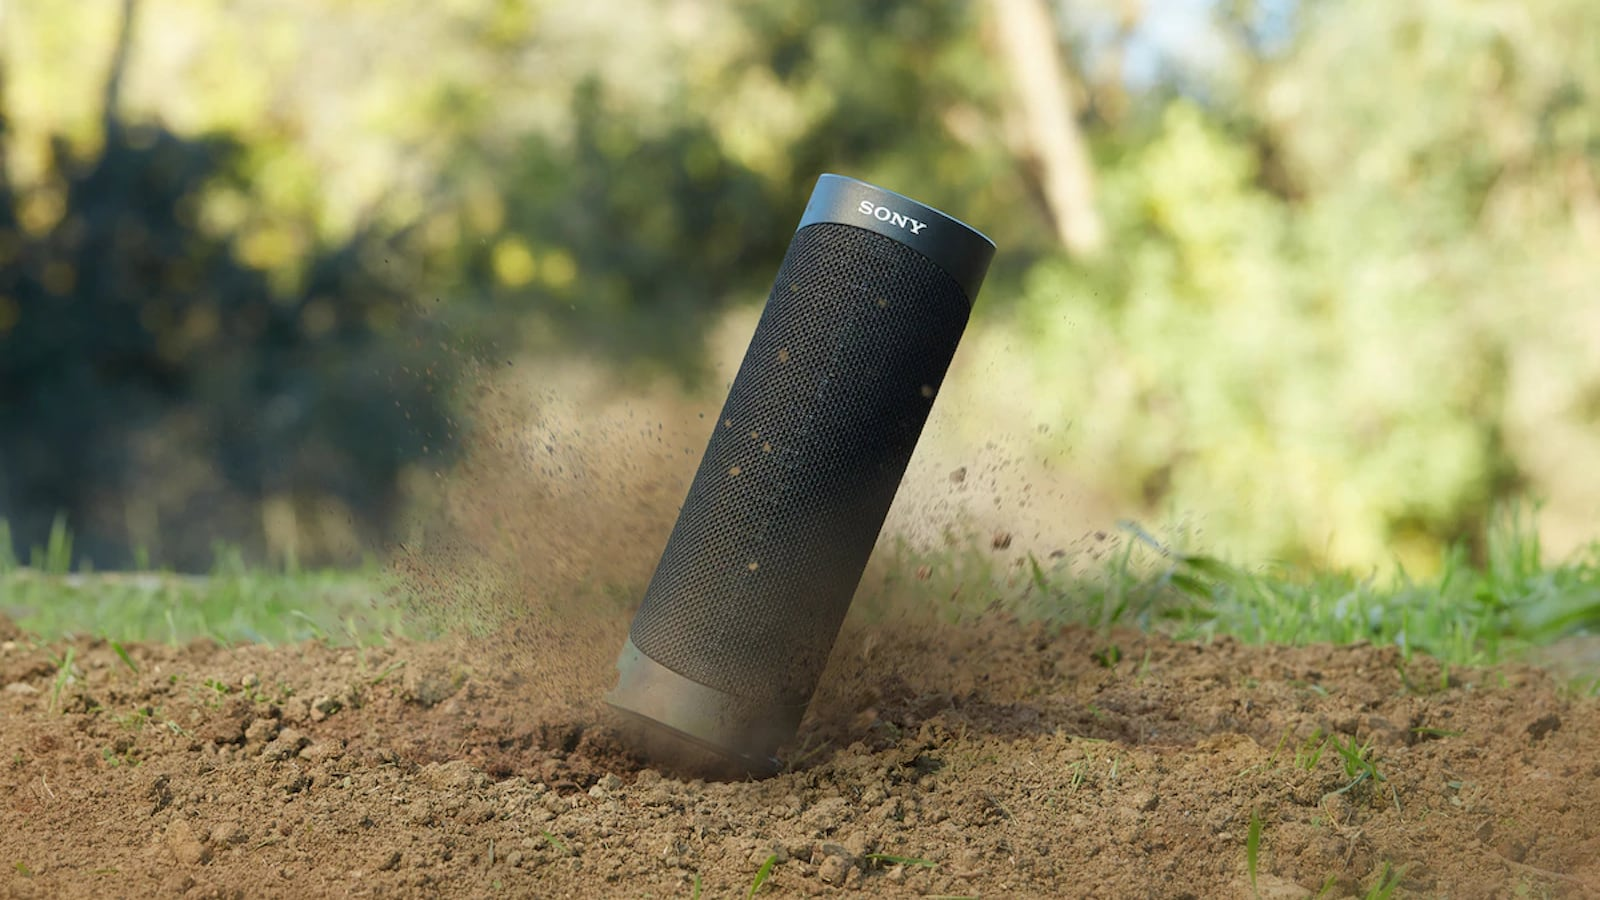 Sony SRS-XB23 EXTRA BASS Portable Bluetooth Speaker is easy to carry anywhere you go